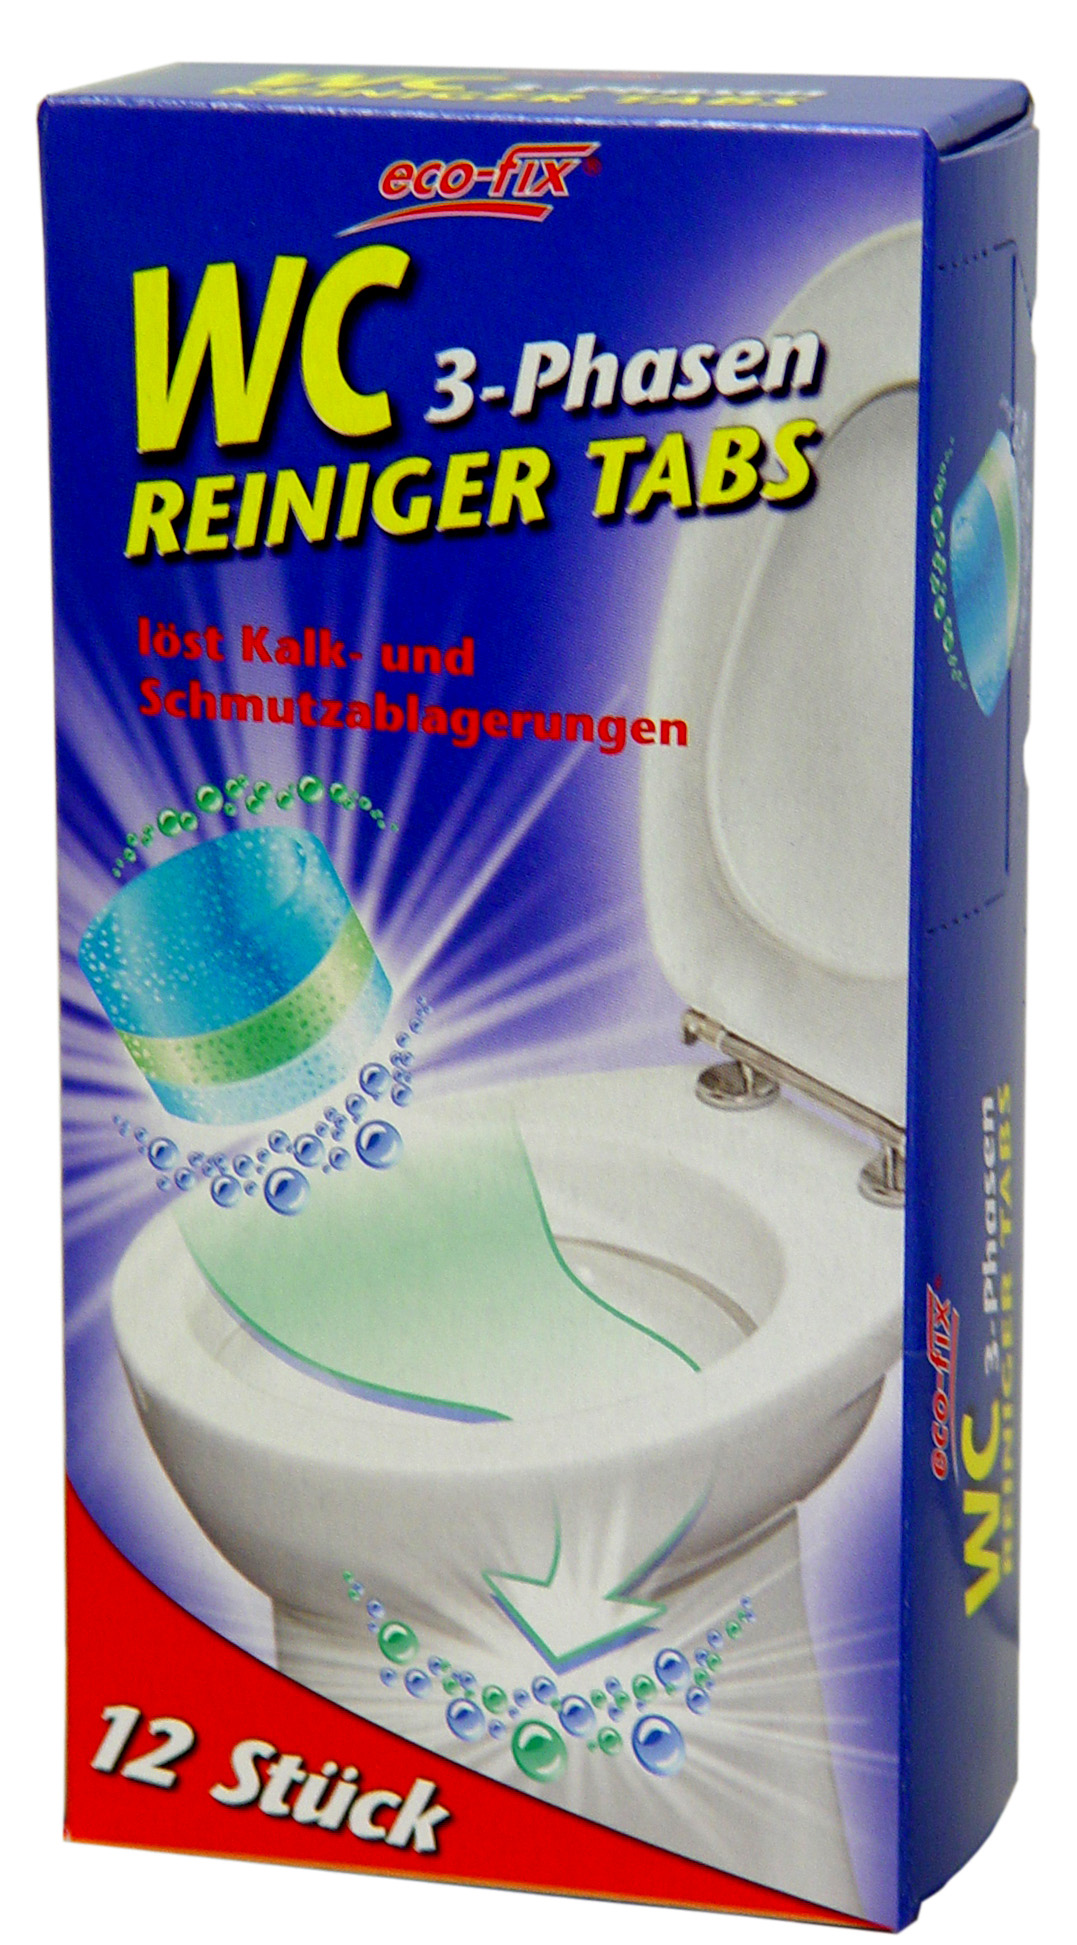 01866 - eco-fix WC 3-Phasen Reiniger Tabs 12er Pack